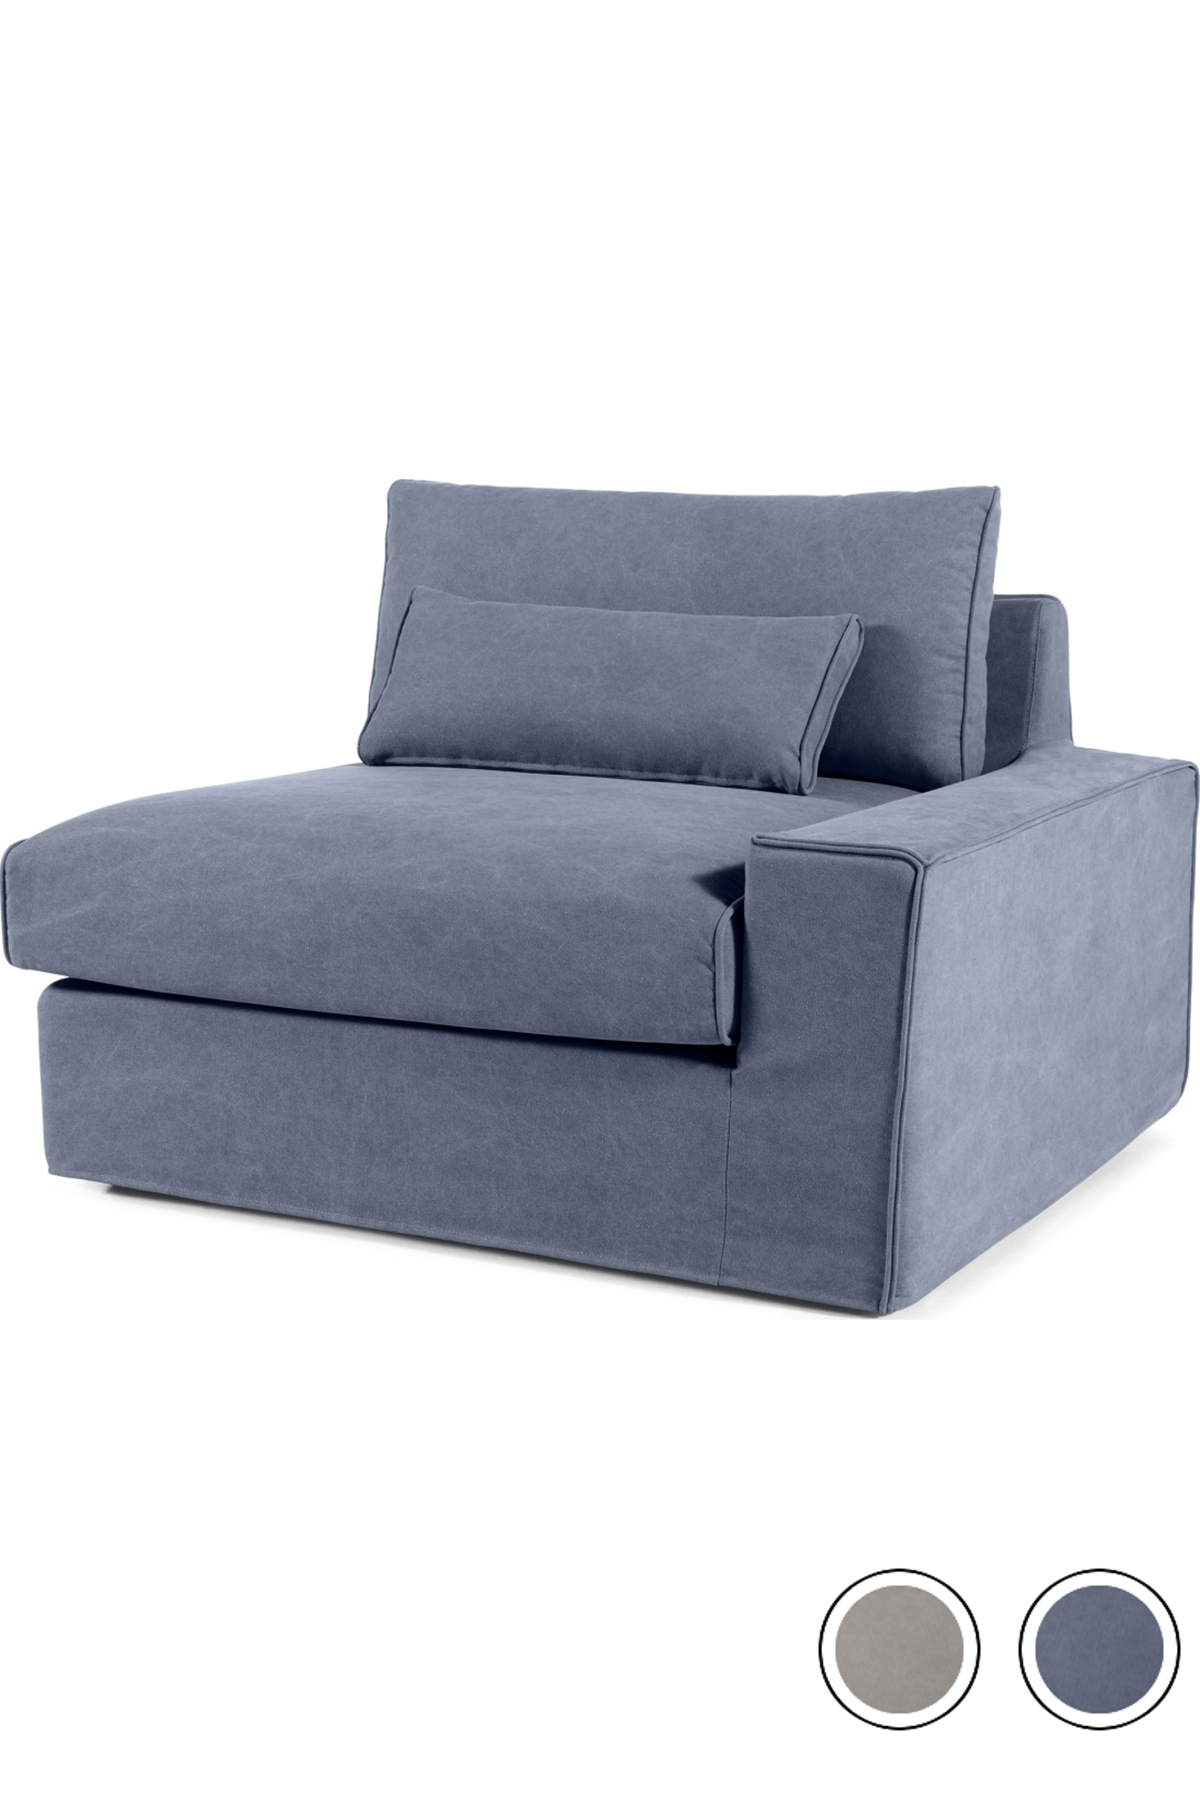 Best Made Washed Blue Cotton Armchair Sofa Modular Sofa Cover 400 x 300